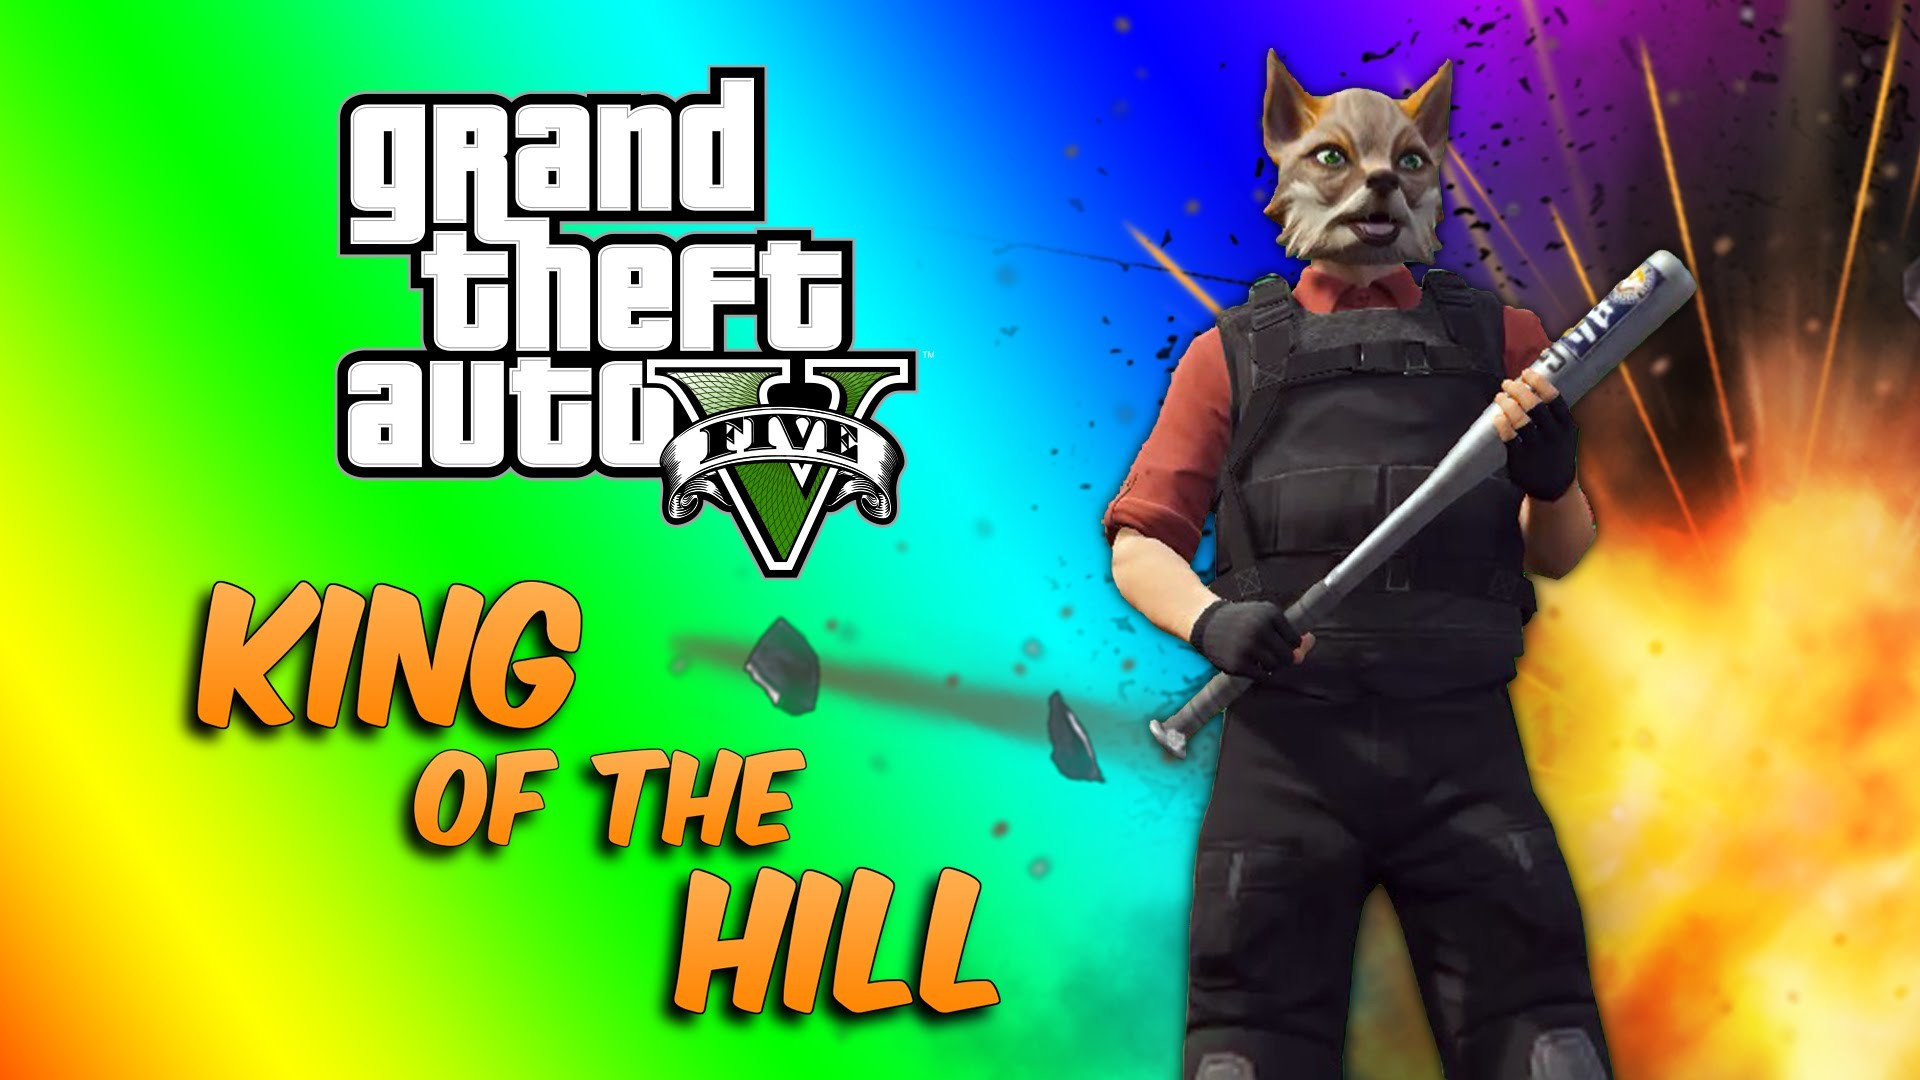 GTA 5 NEW DLC Update 'Freemode Events' Gameplay! – King of the Hill Game  Mode is FUN! (GTAV)